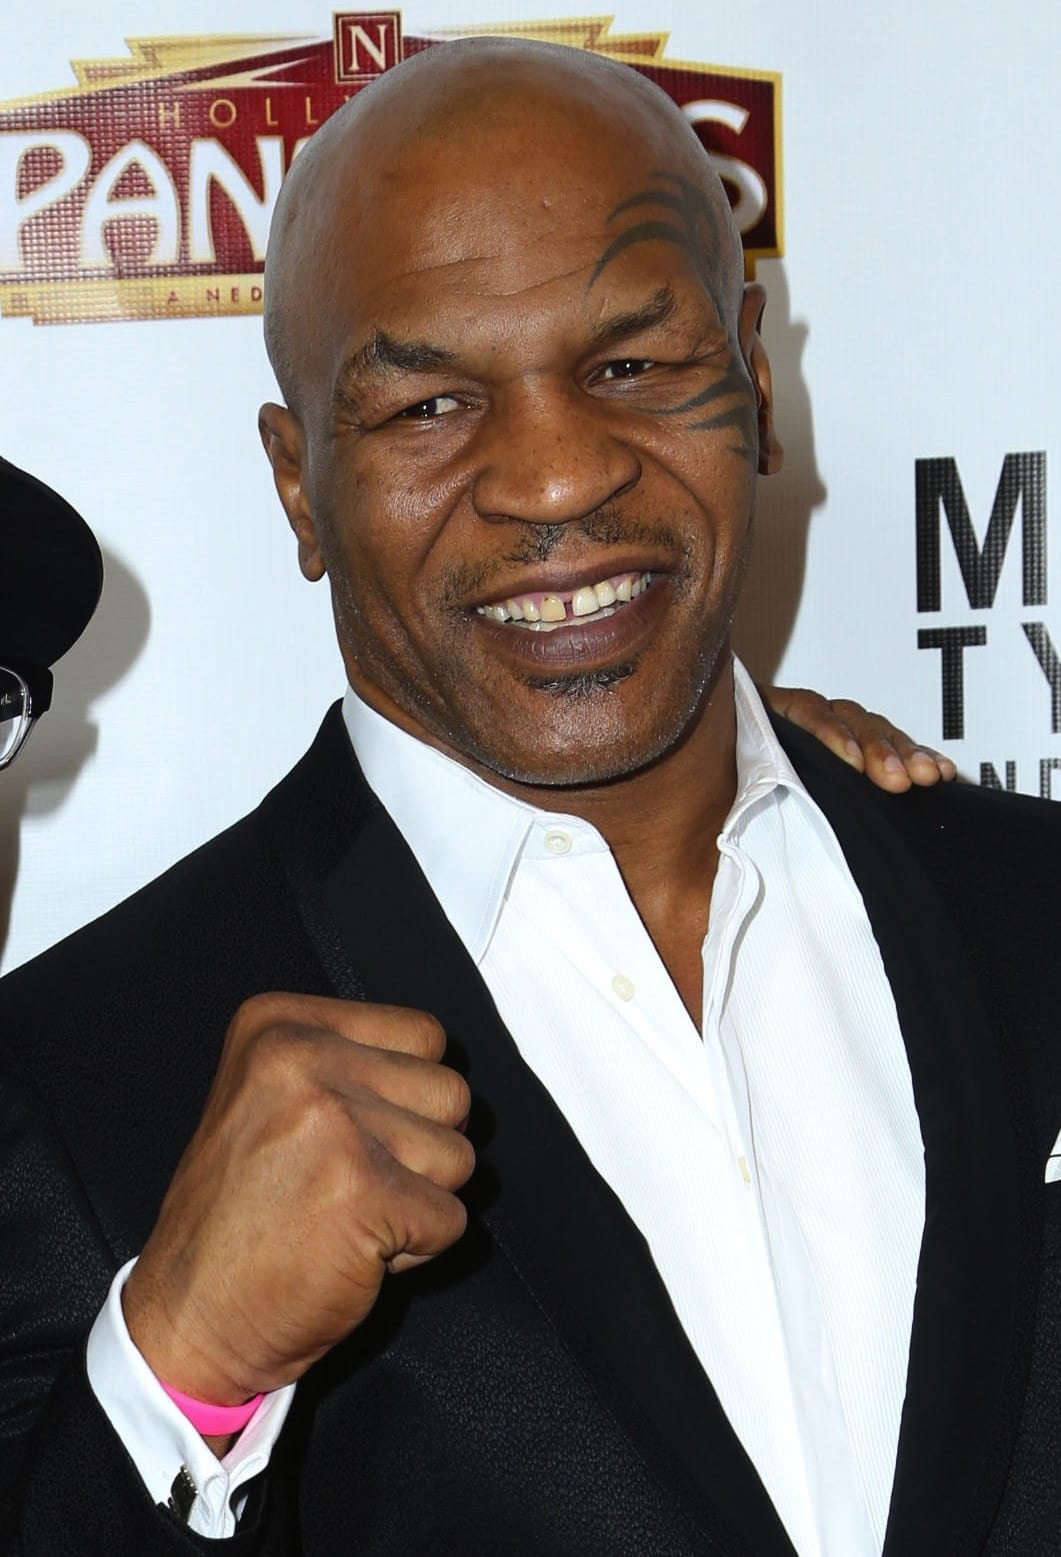 Mike Tyson 50 Shades Of Grey Spoof Coming Soon In Scary Movie 5 The Hollywood Gossip